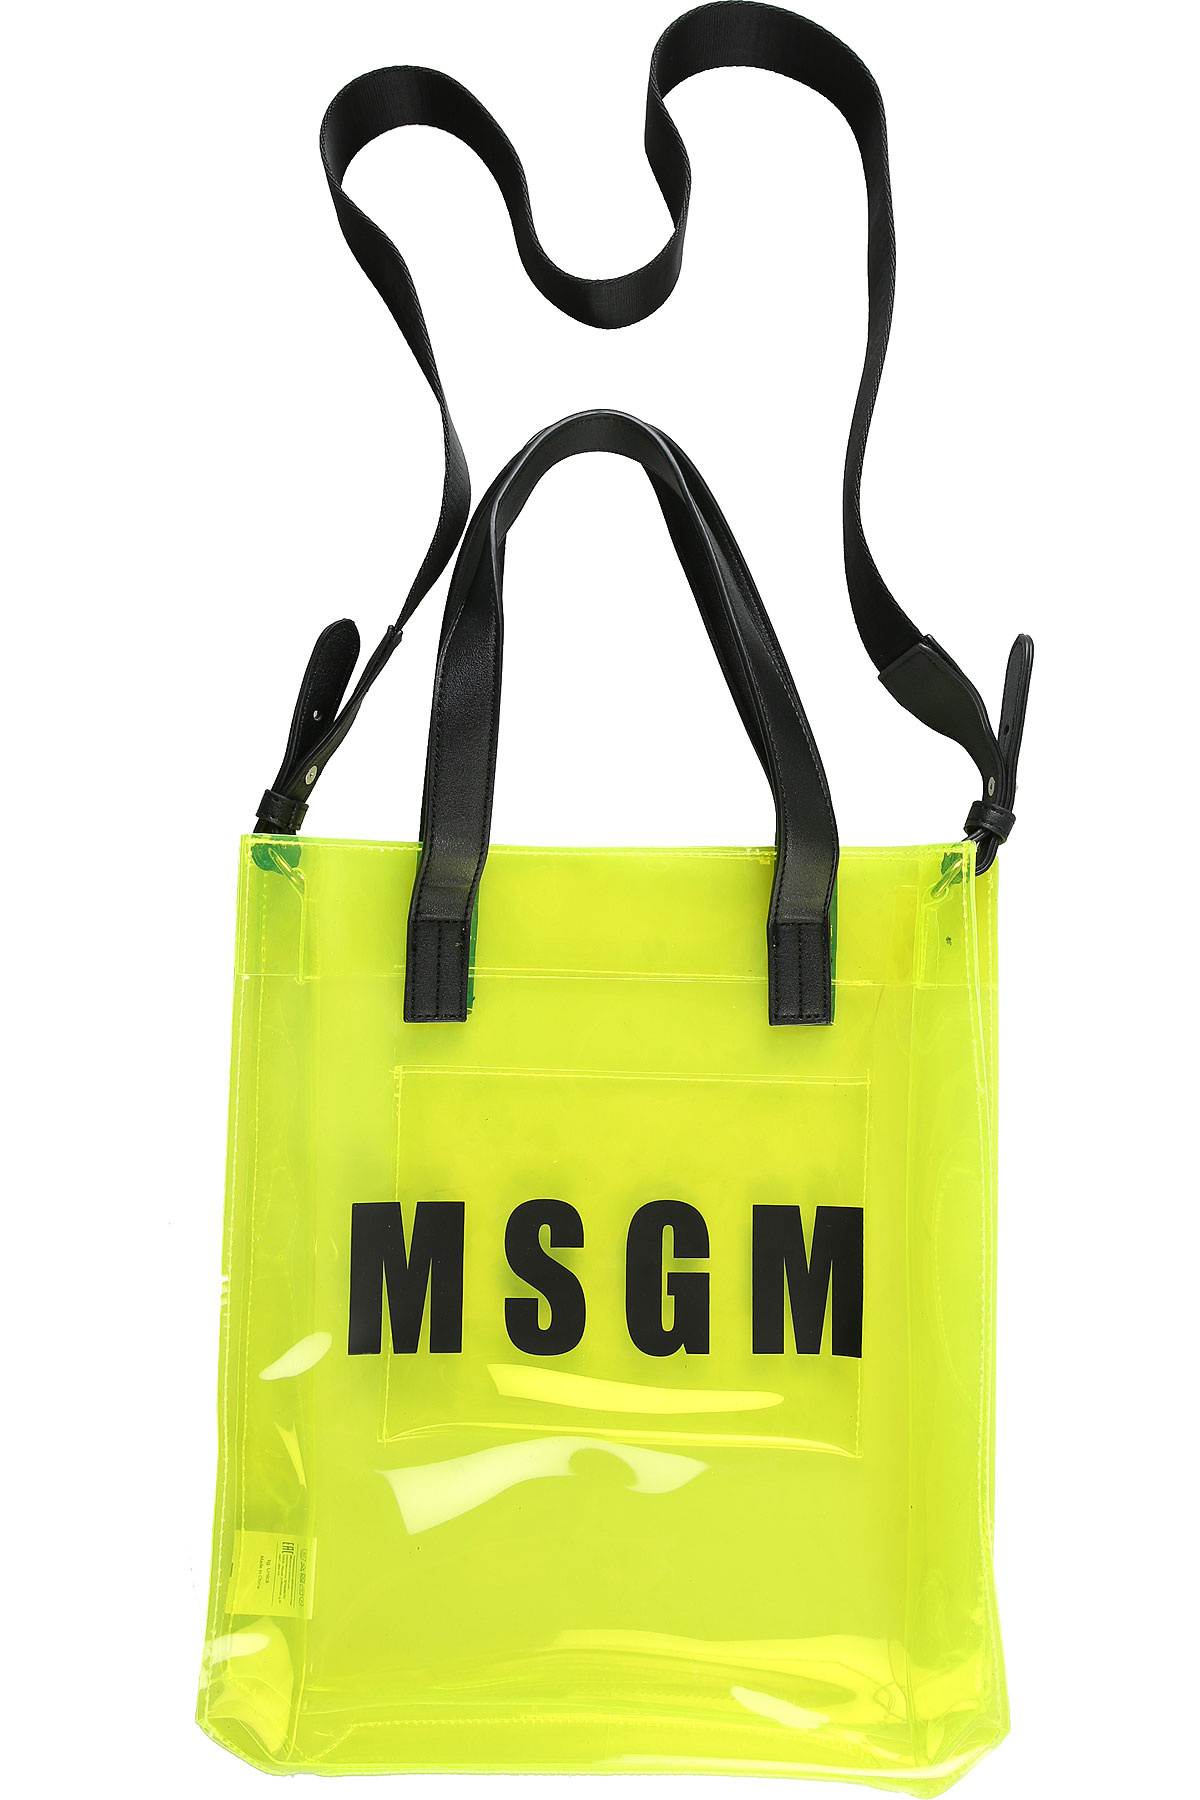 MSGM Accessories, Yellow Fluo, PVC, 2017